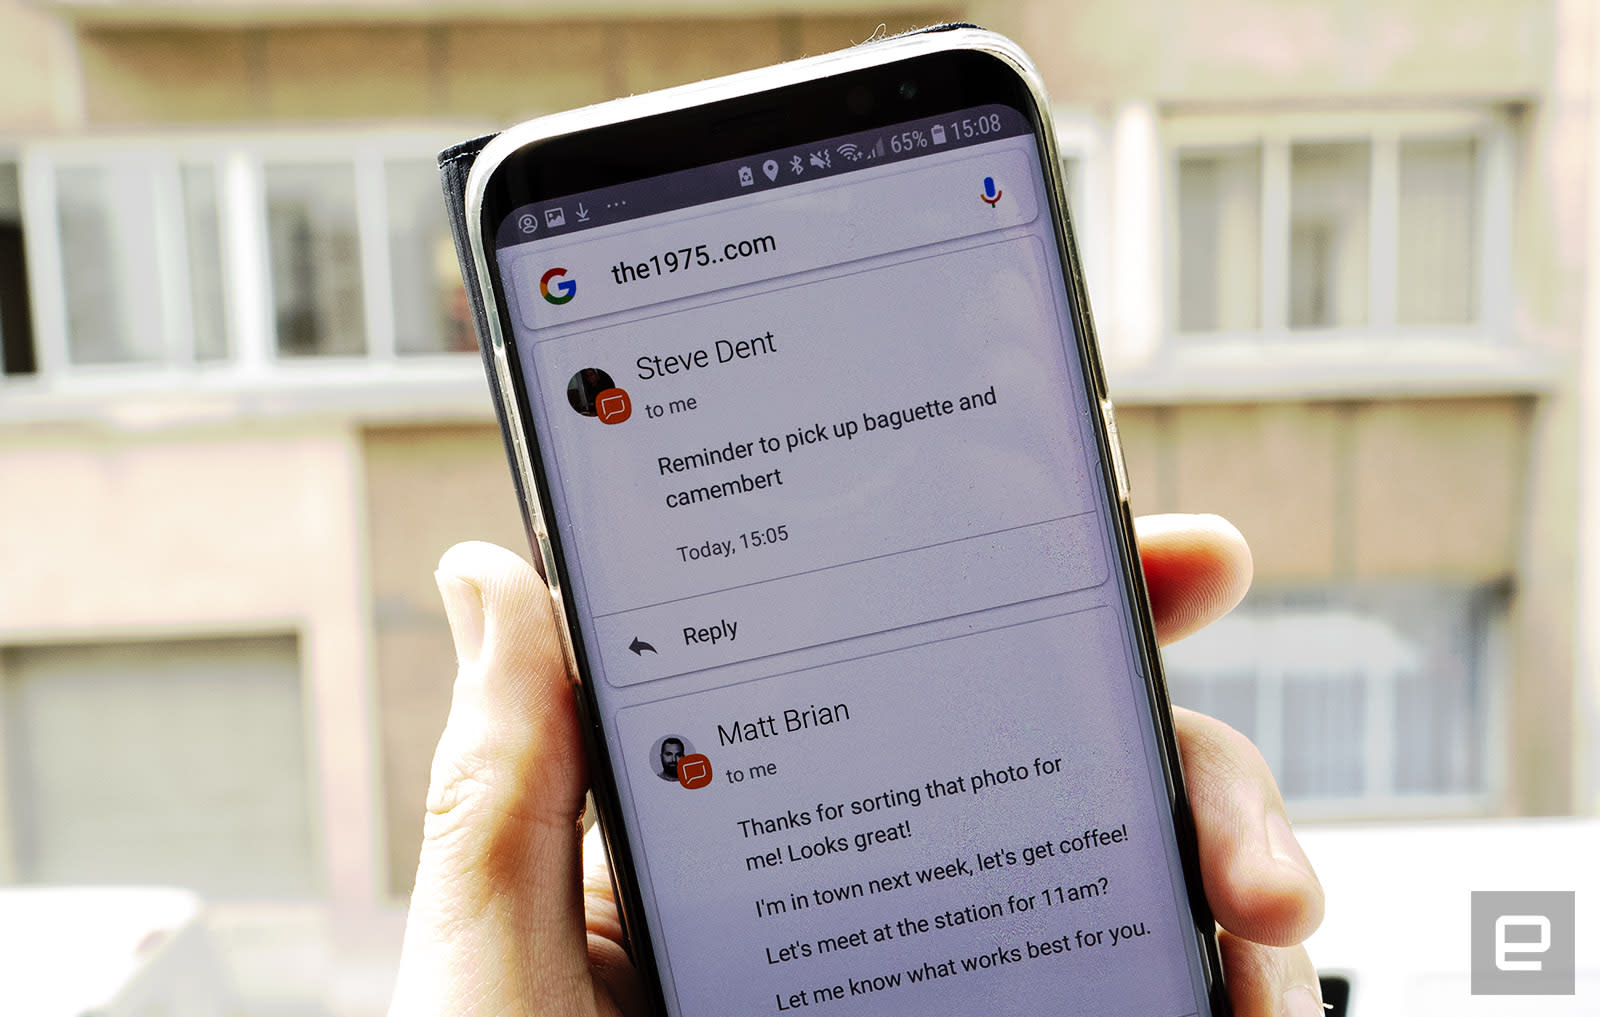 Bizarre Android bug displays private text messages